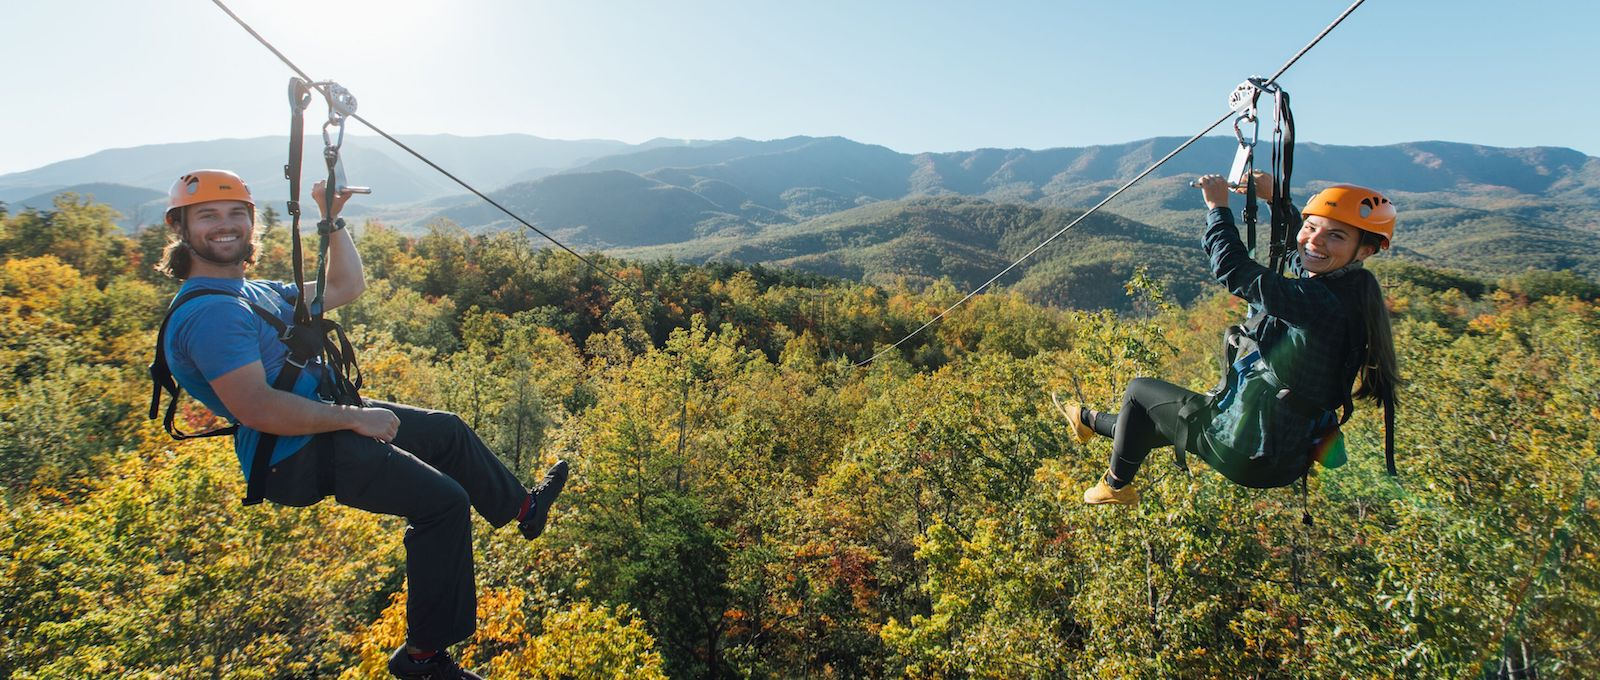 Top 4 Reasons Our Ziplines in the Smoky Mountains are a Perfect Team Building Activity